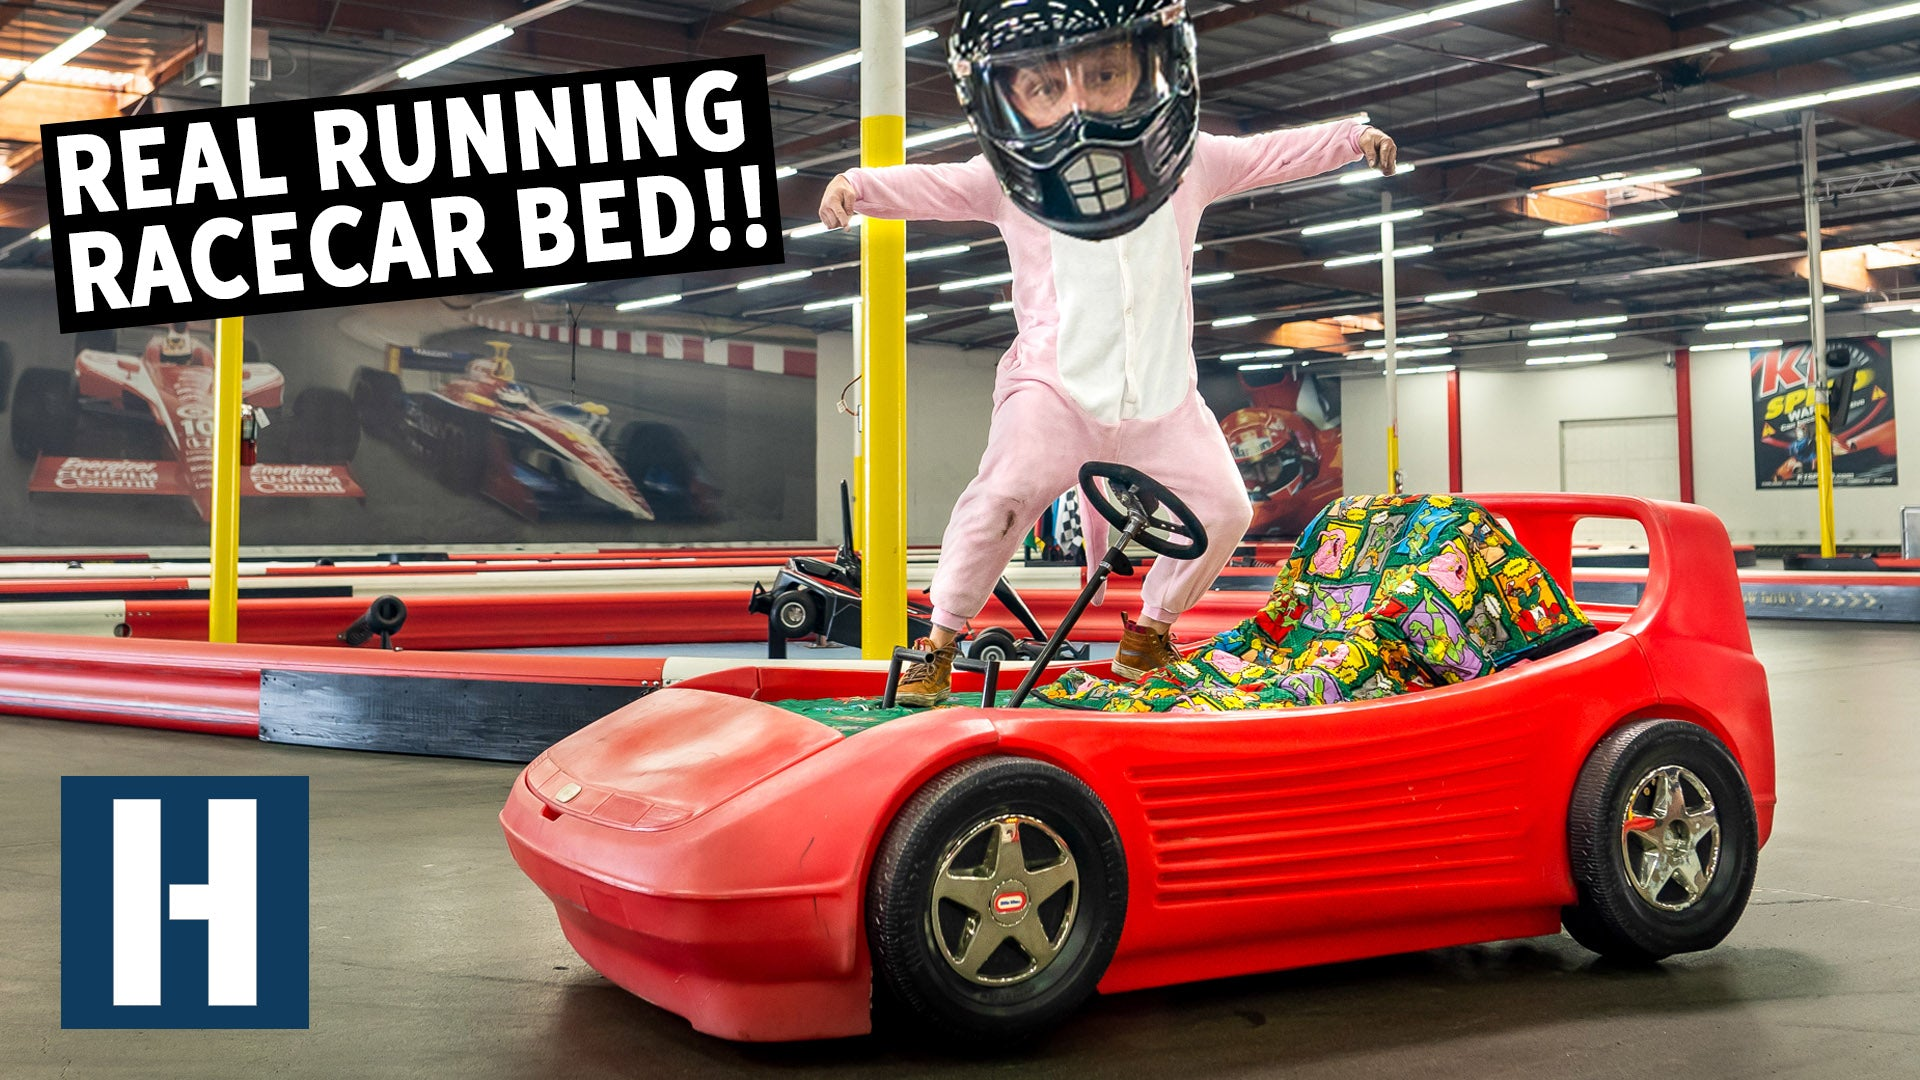 We Build A Motorized Racecar Bed And Take It To A Kart Track Hoonigan